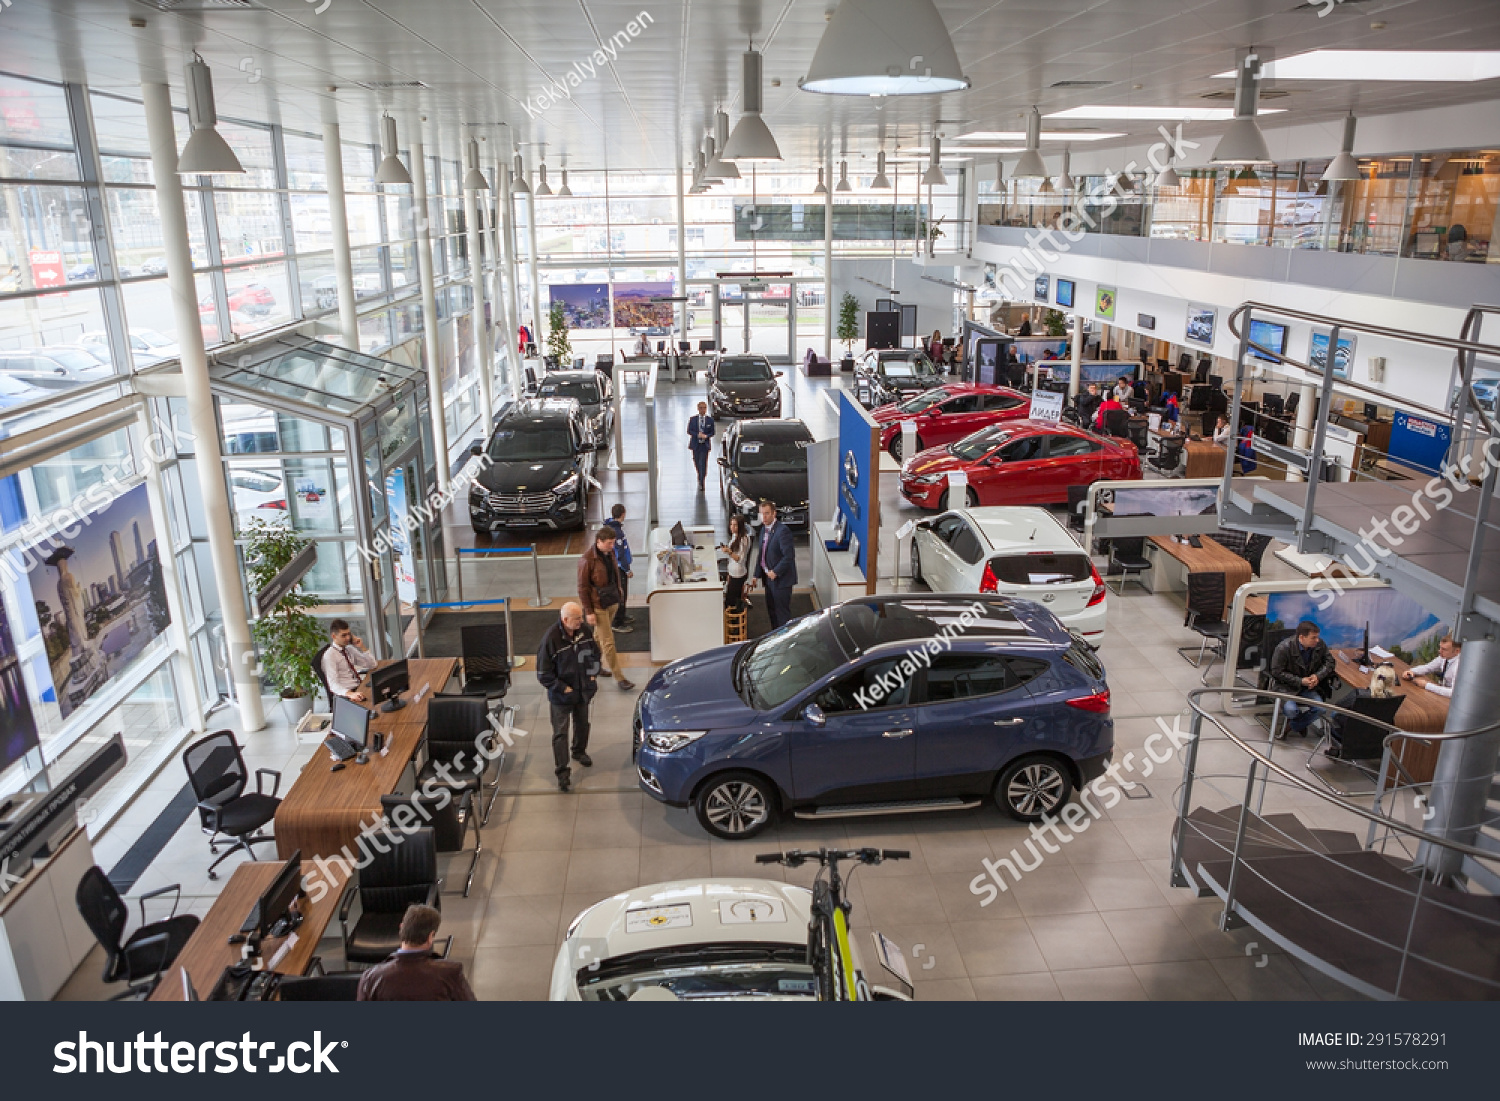 st petersburg russia circa apr 2015 top view of car dealership showroom with customers and. Black Bedroom Furniture Sets. Home Design Ideas